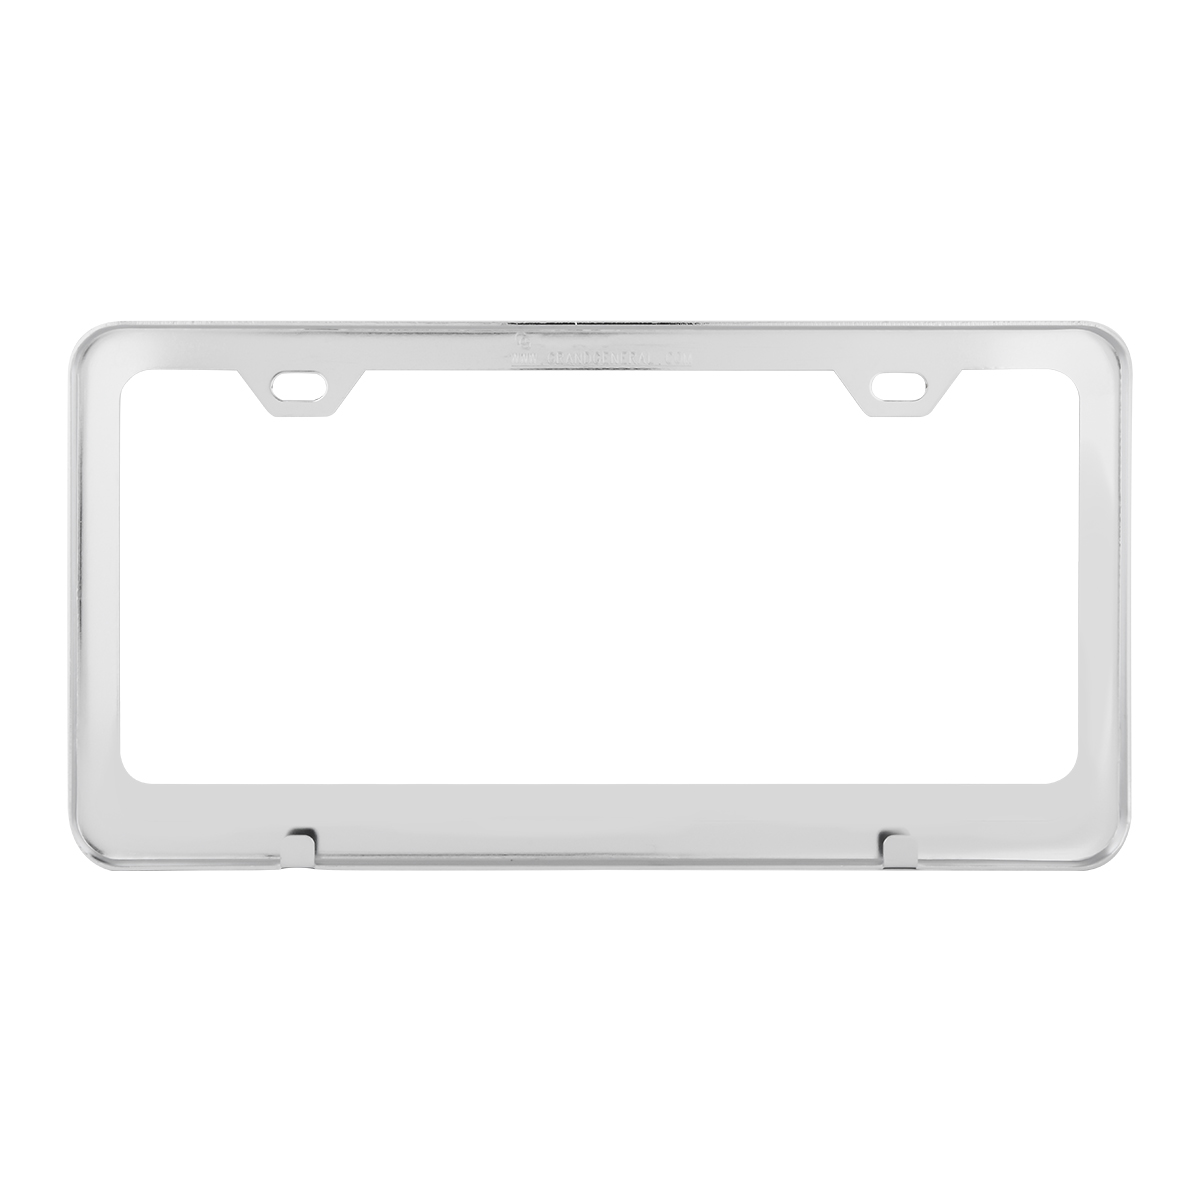 60440 Plain Chrome Plated Steel 2 Hole License Plate Frame - Back View